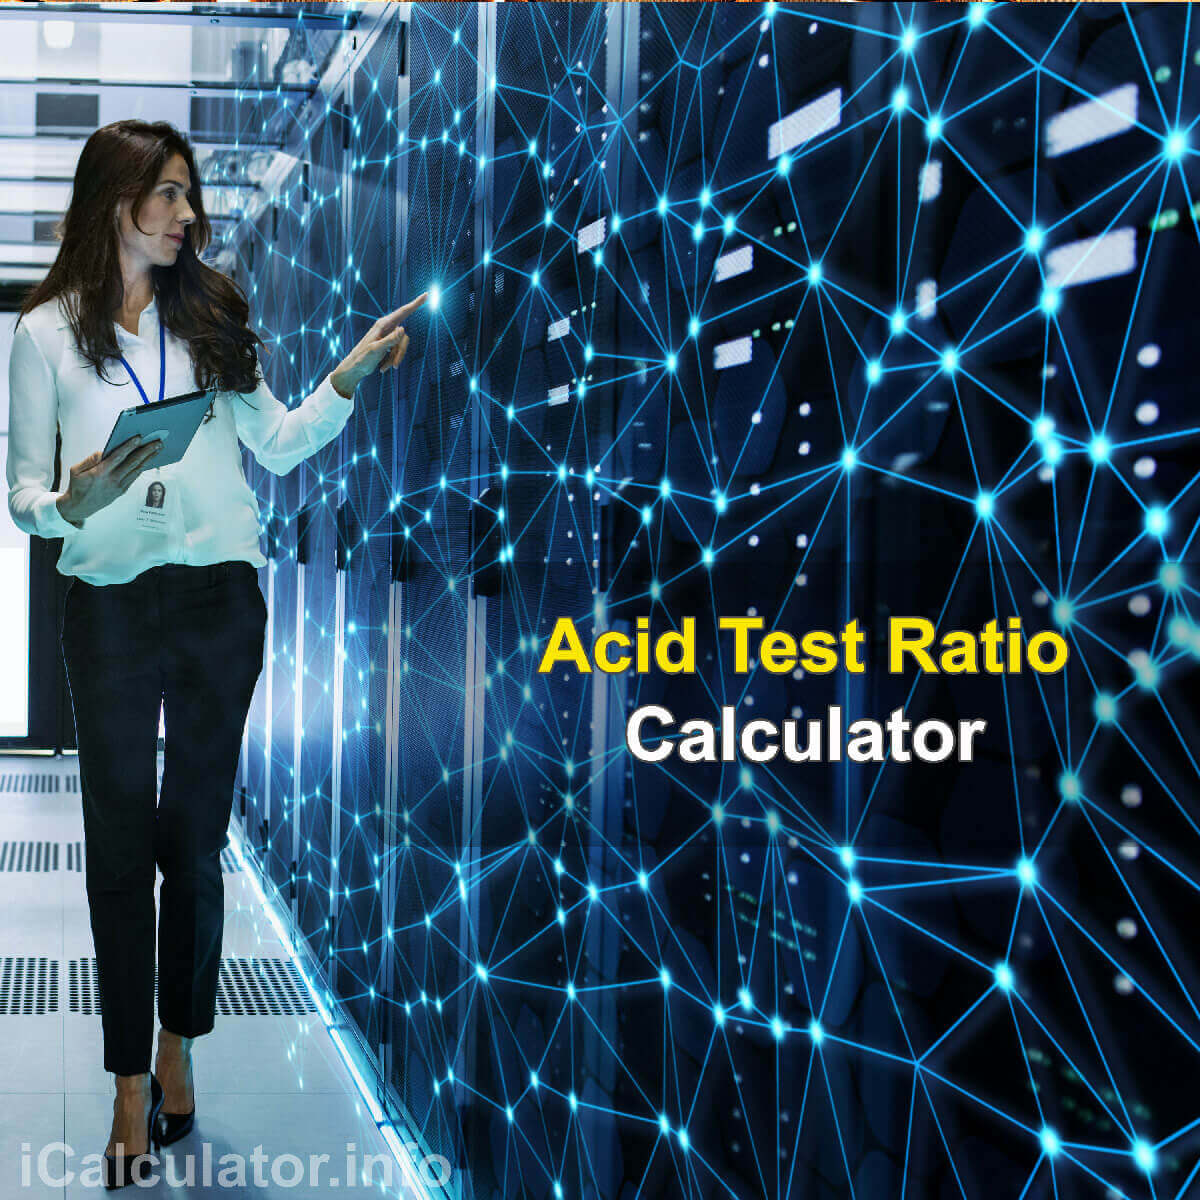 Acid Test Ratio Calculator. This image provides details of how to calculate the Acid Test Ratio using a calculator and notepad. By using the rule of Acid Test Ratio formula, the Acid Test Ratio Calculator provides a true calculation of how viable a company is for investment and financial stability based on cash flows.